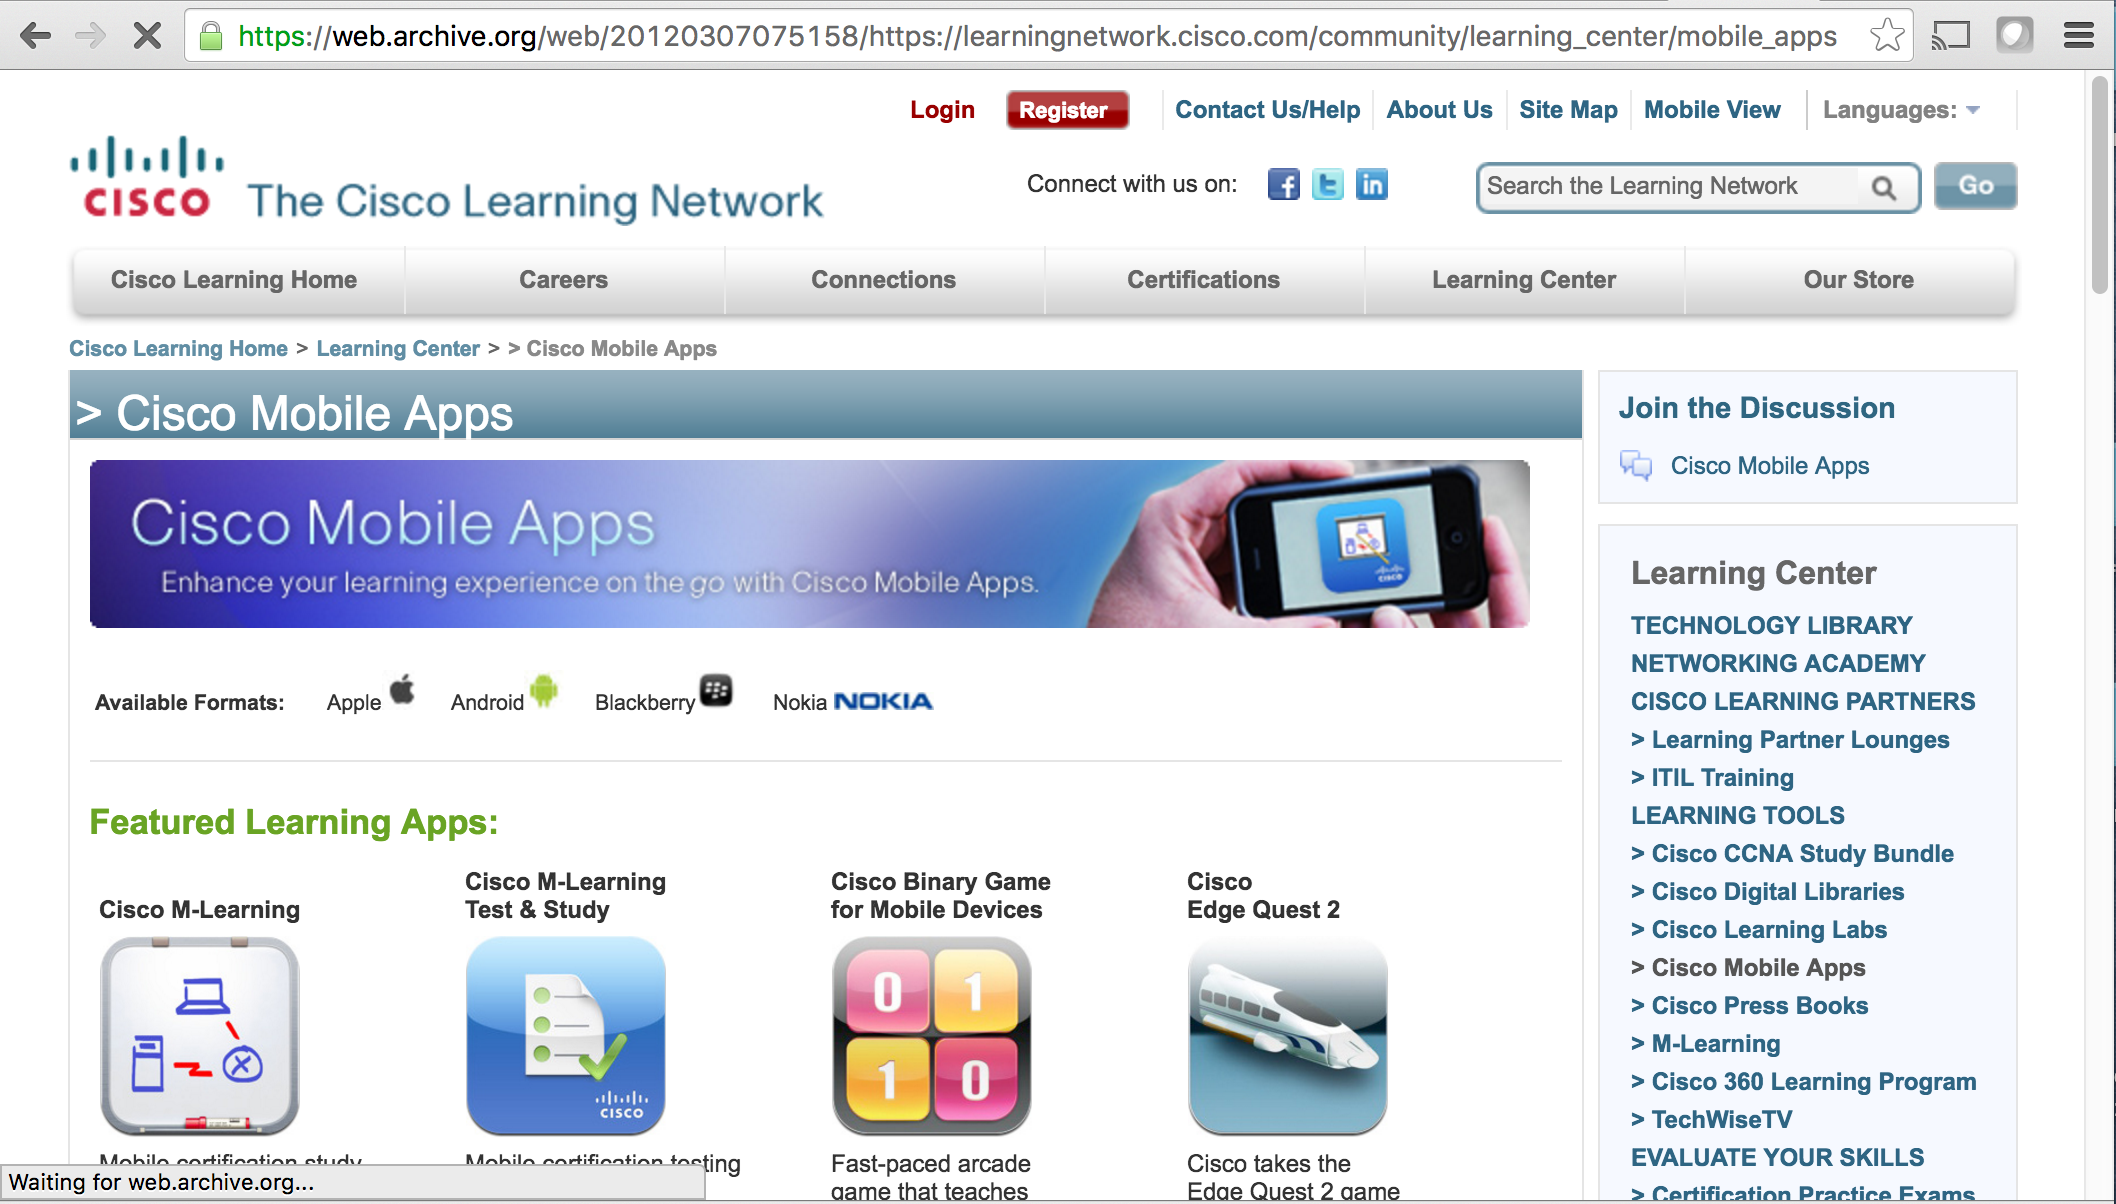 Mobile Apps Page - During the early days of the iPhone, mobile app-based learning was already booming. To improve the UX, we dedicated a section to finding all mobile-based learning modules / games / apps in one space. I was responsible for all icons, graphics, page layout and content updates.